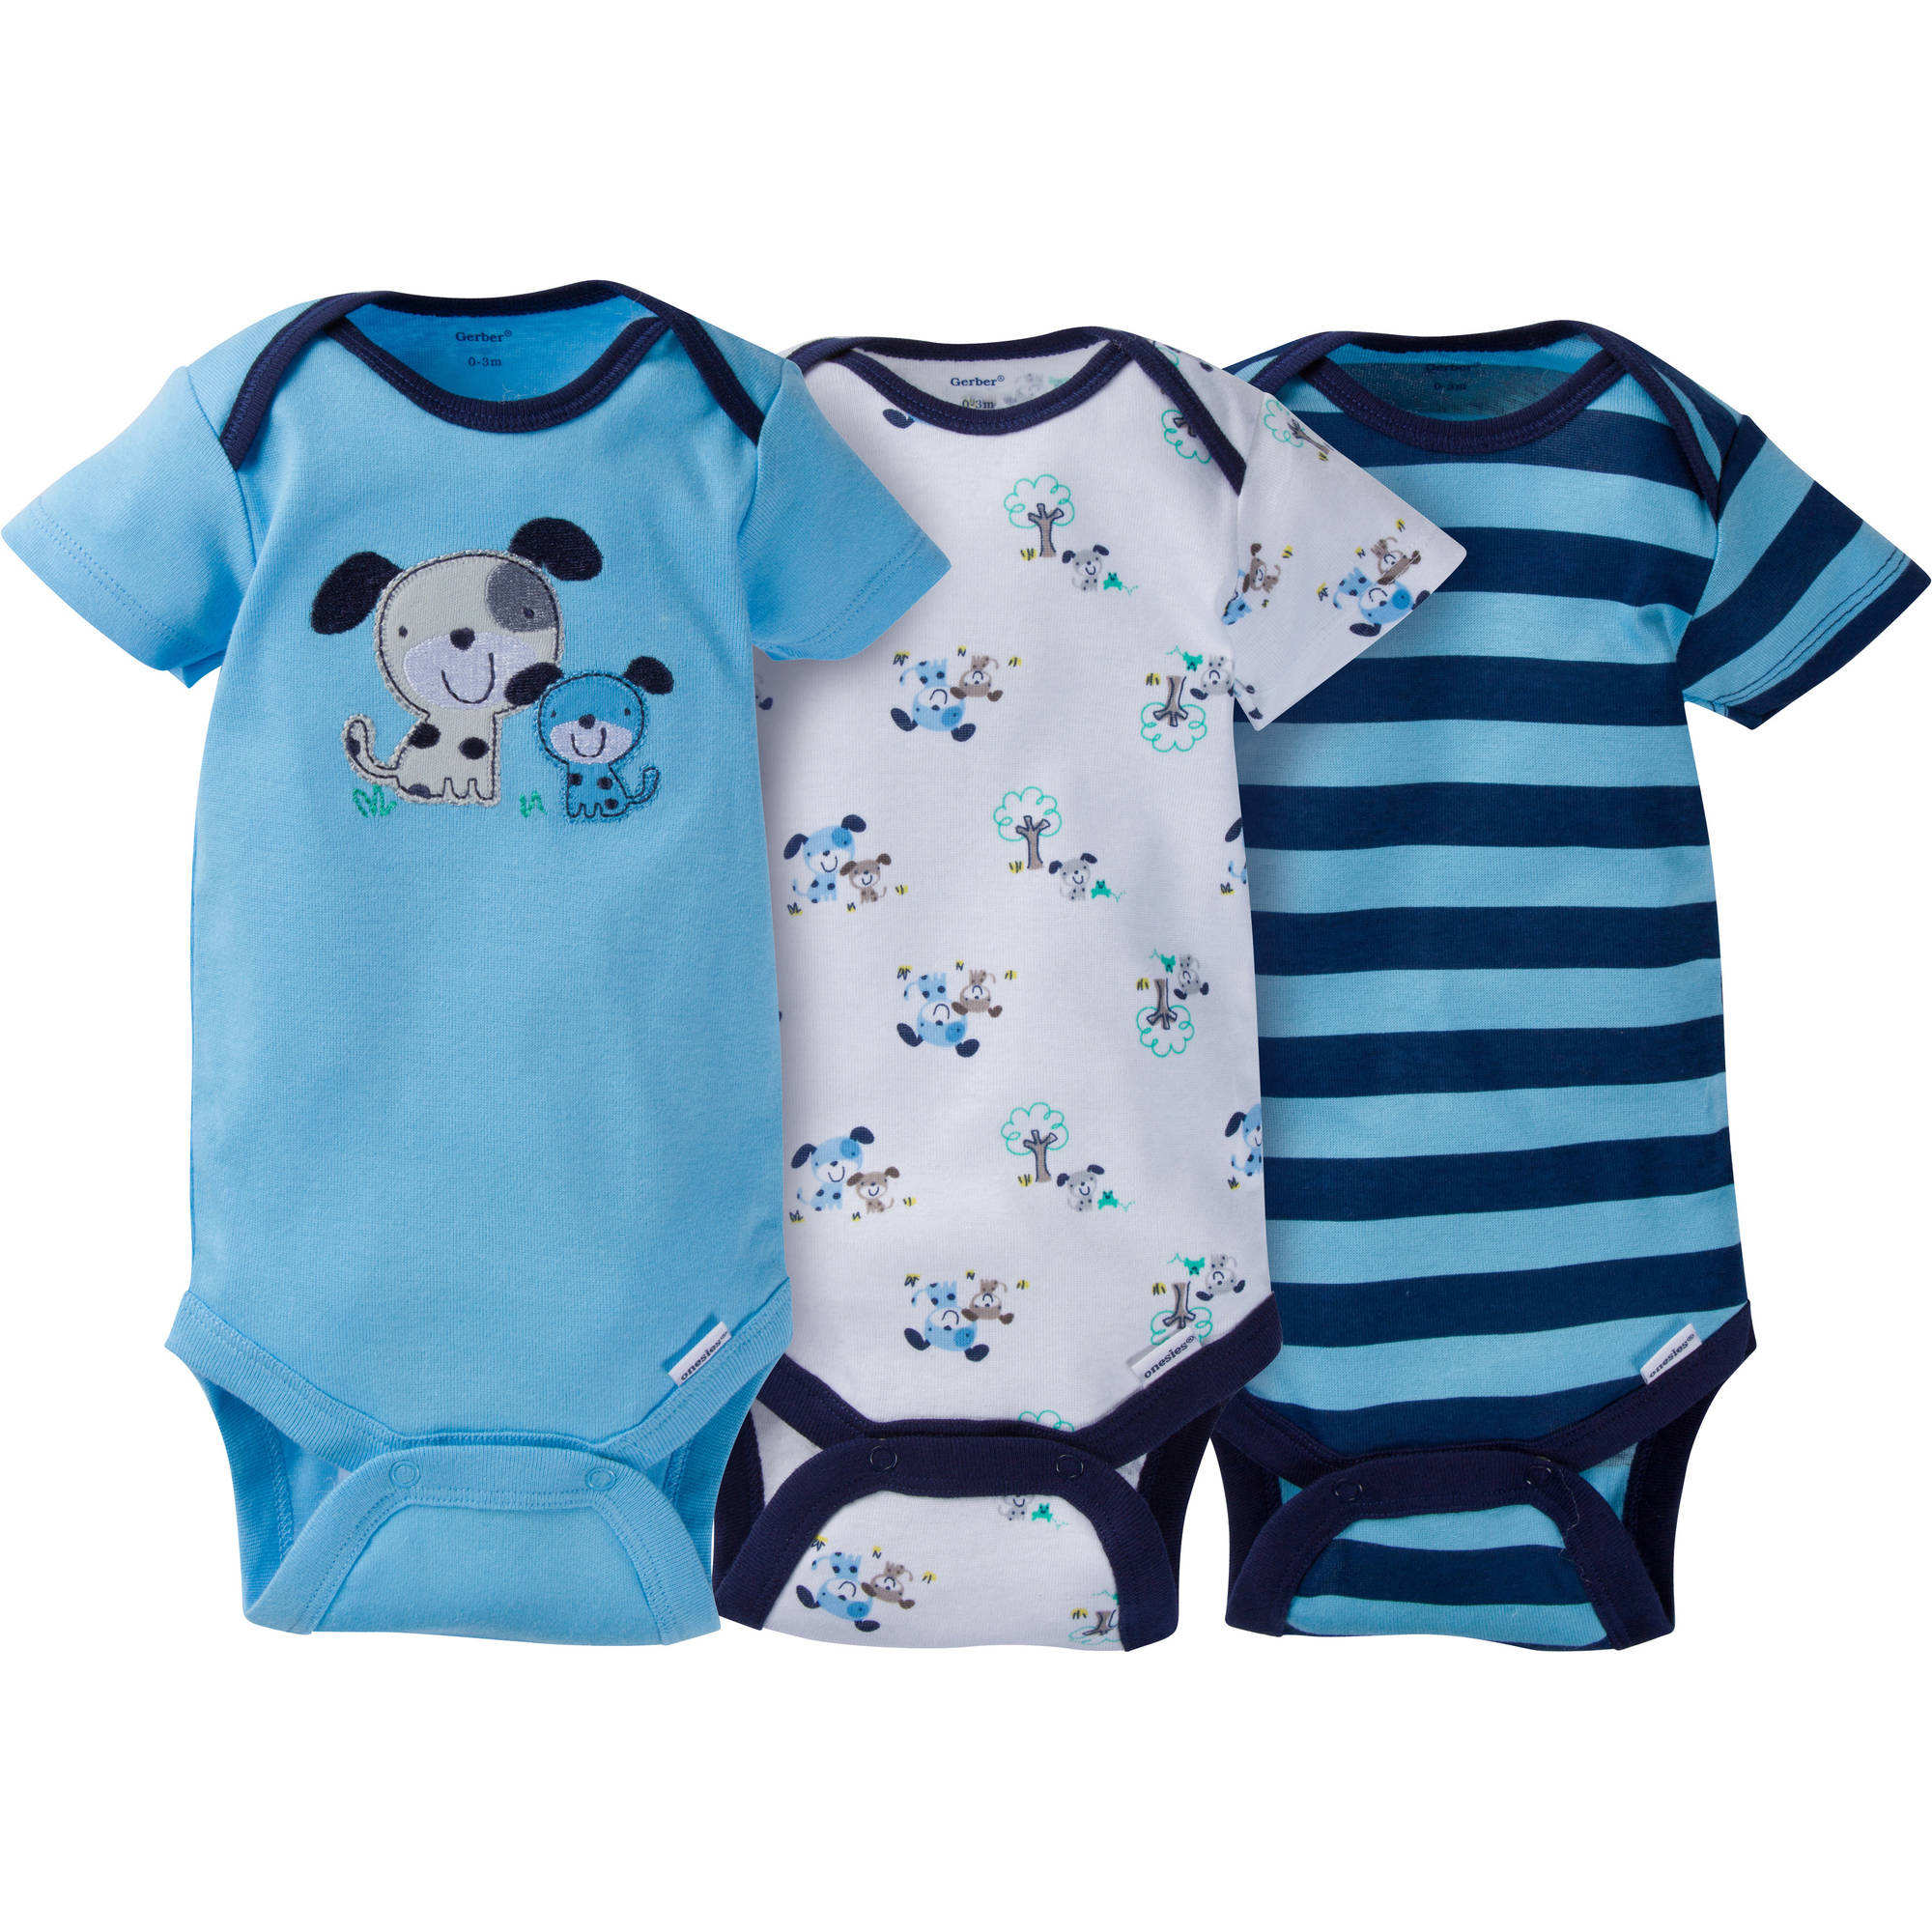 Shop for boys baby bodysuits & onesies and other baby & infant apparel products at dexterminduwi.ga Shop. Browse our baby & infant apparel selections and save today.